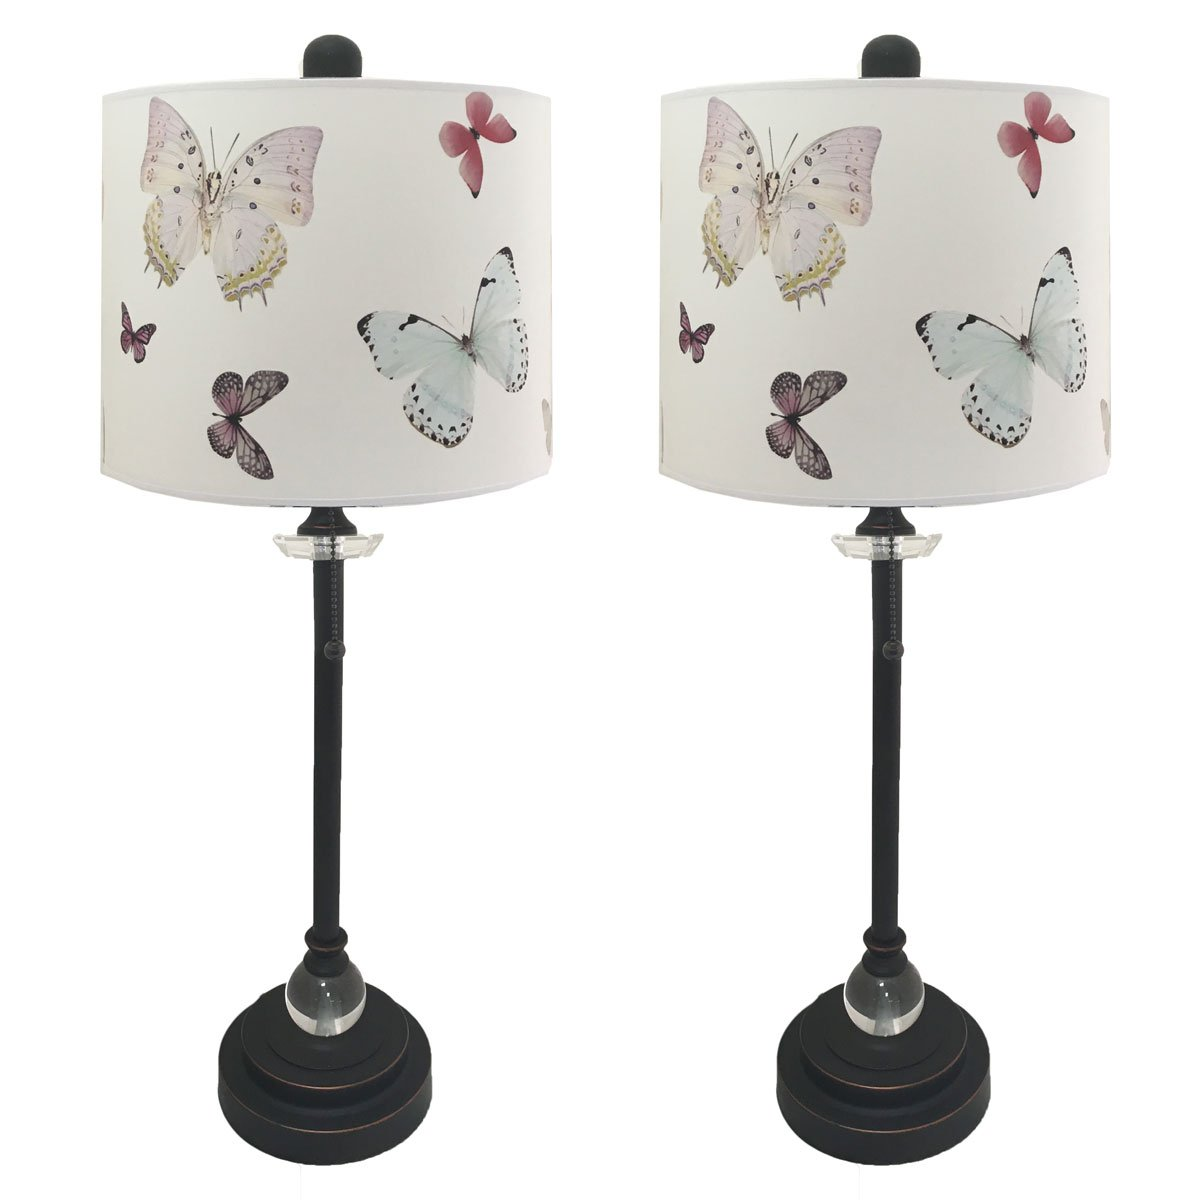 Royal Designs 28'' Crystal and Oil Rub Bronze Buffet Lamp with Colorful Butterfly Design Hard Back Lamp Shade, Set of 2